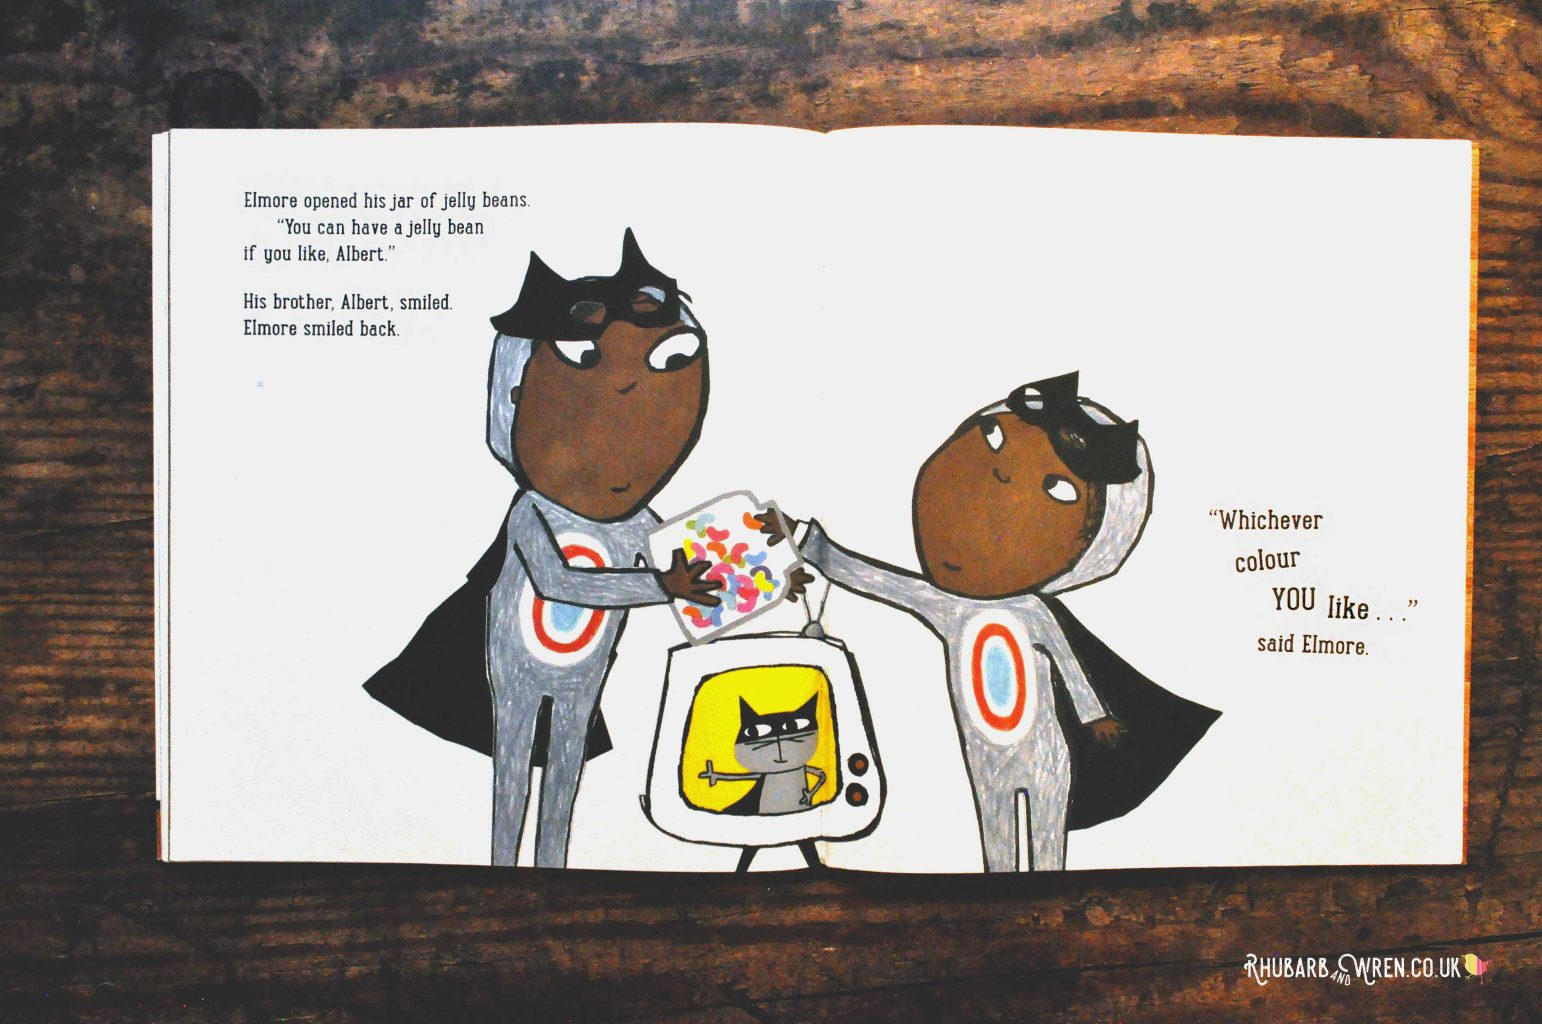 A page from the diverse children's picture book 'The New Small Person', showing the BAME boy main characters.